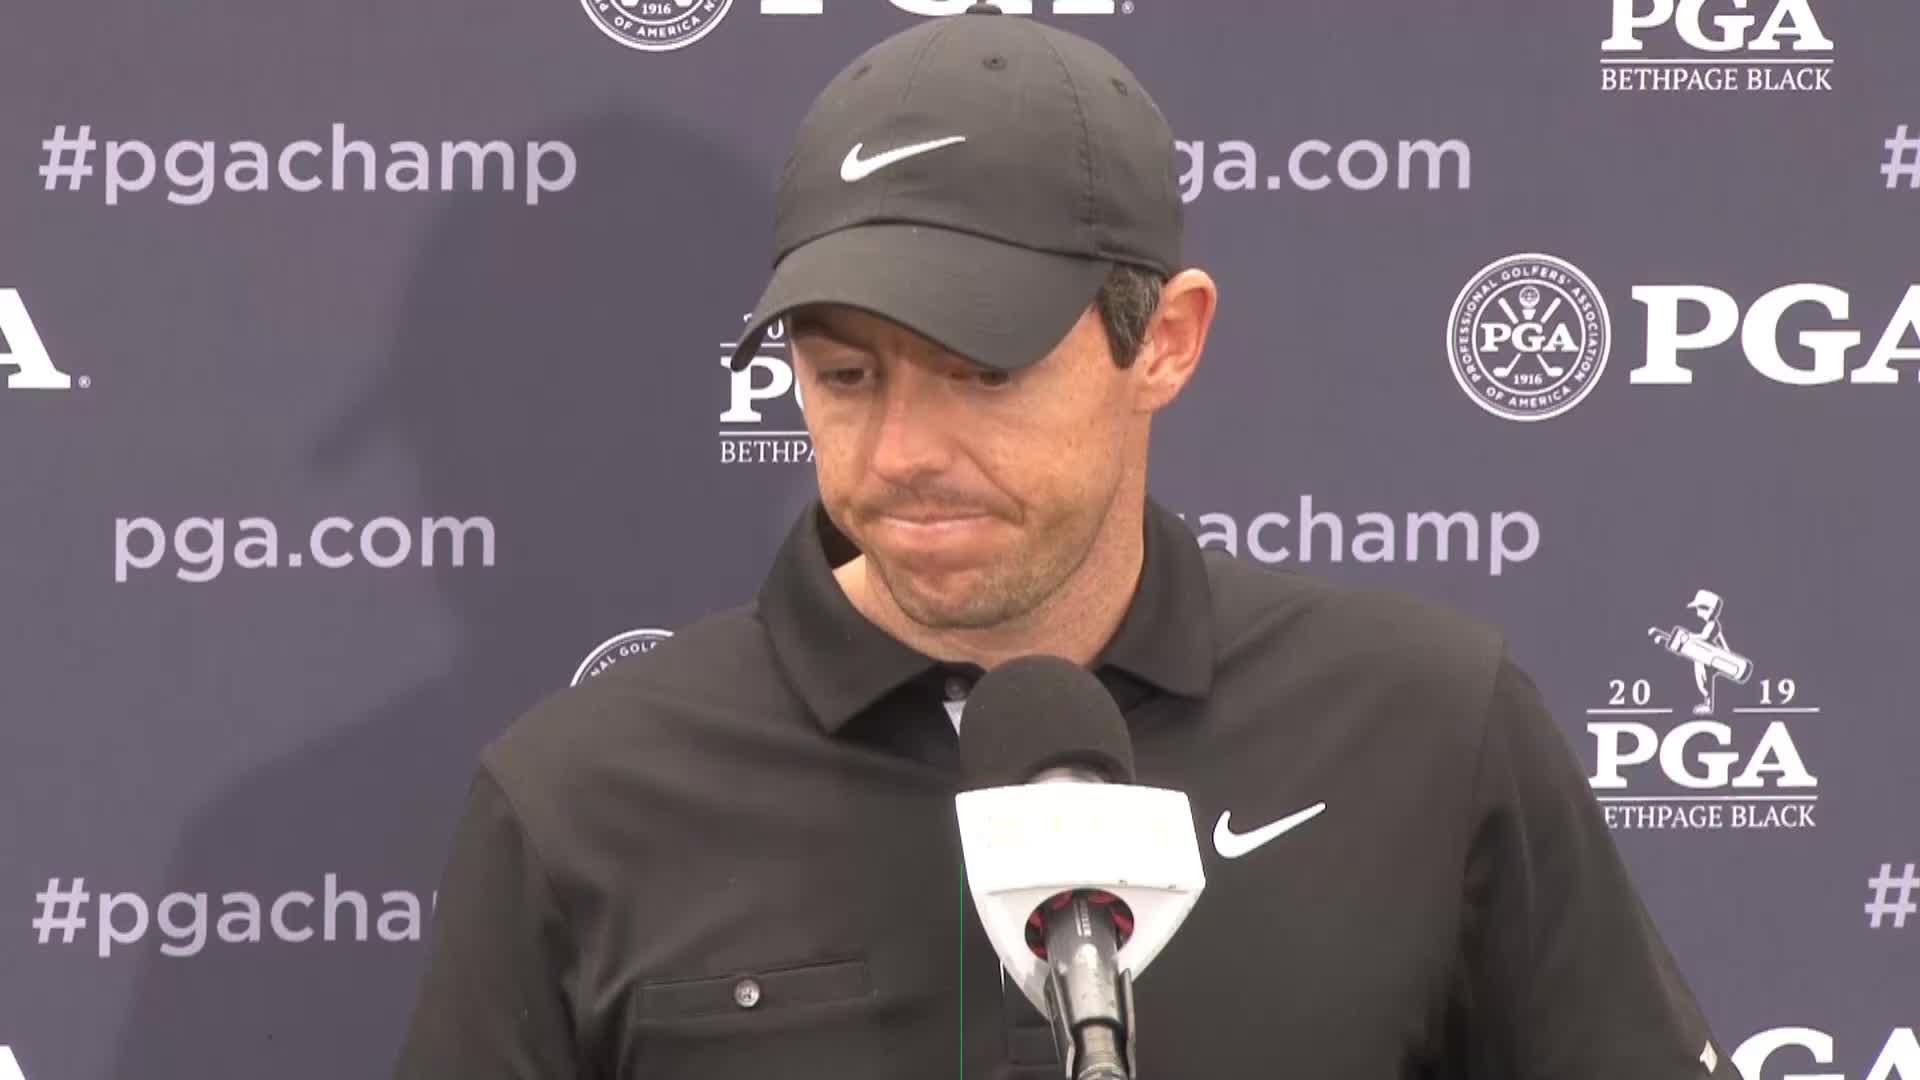 I knew I had to step up to make the cut - McIlroy